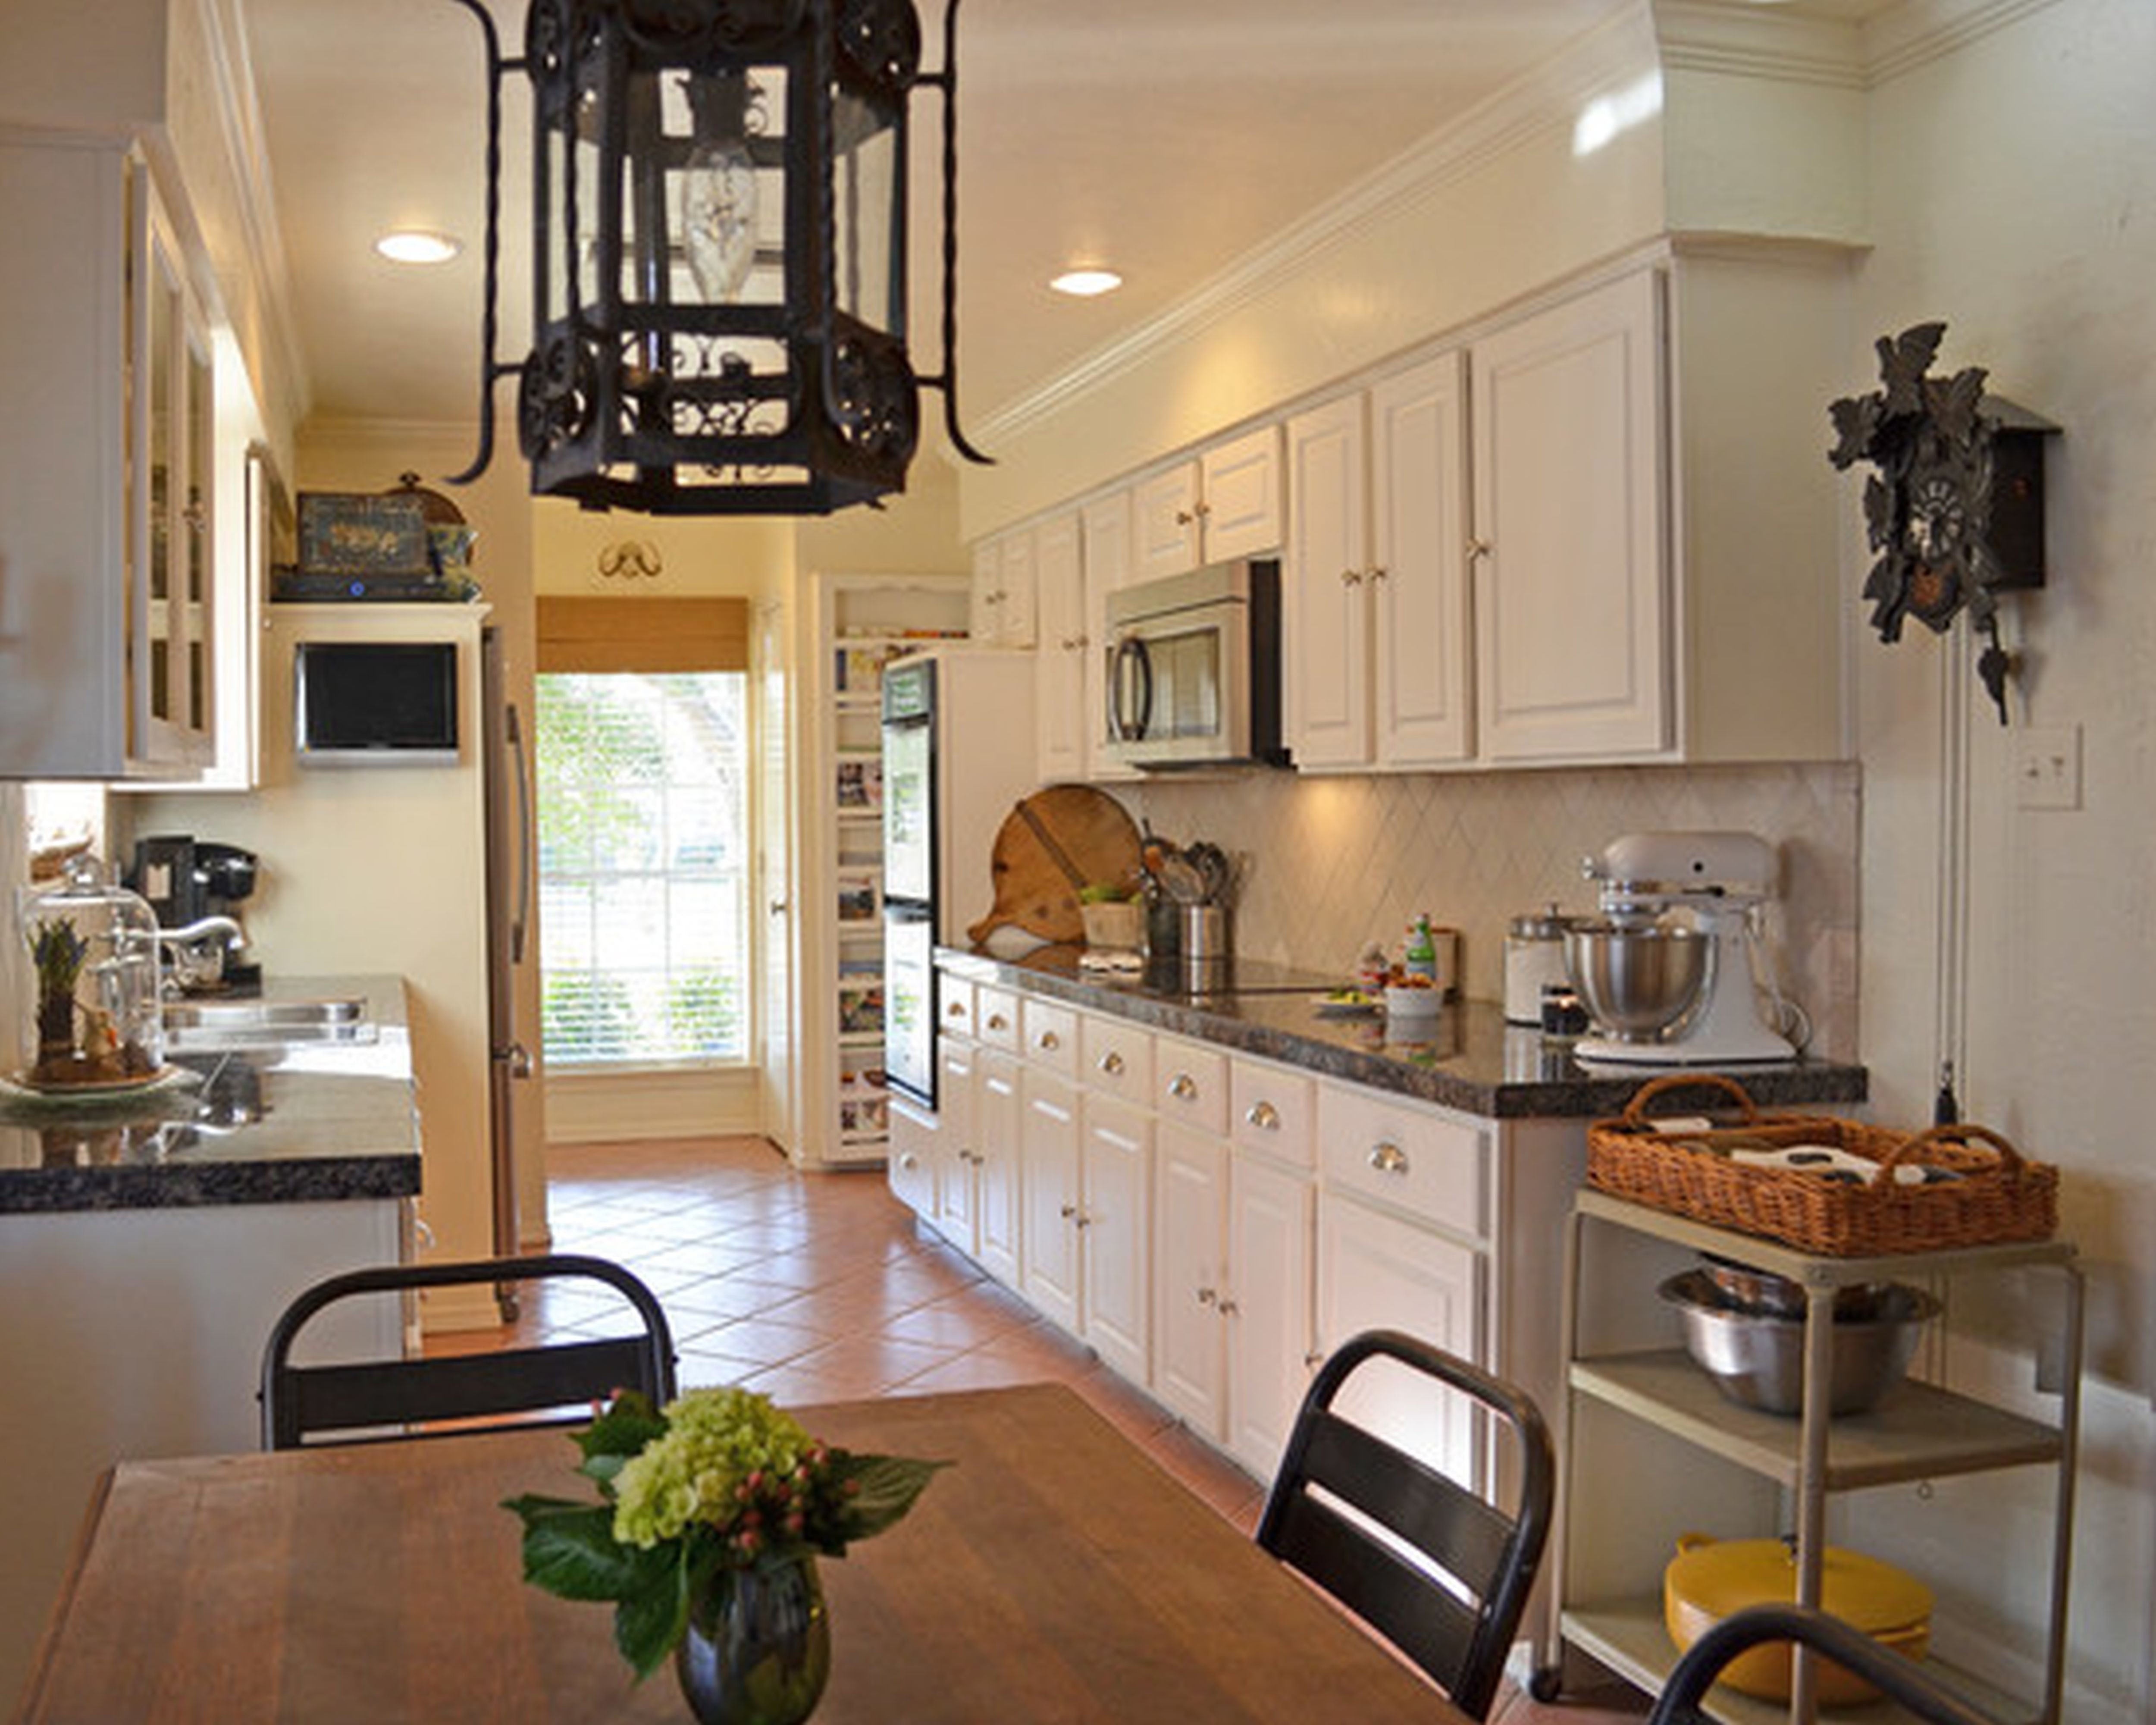 Home Decor For Kitchen Counters